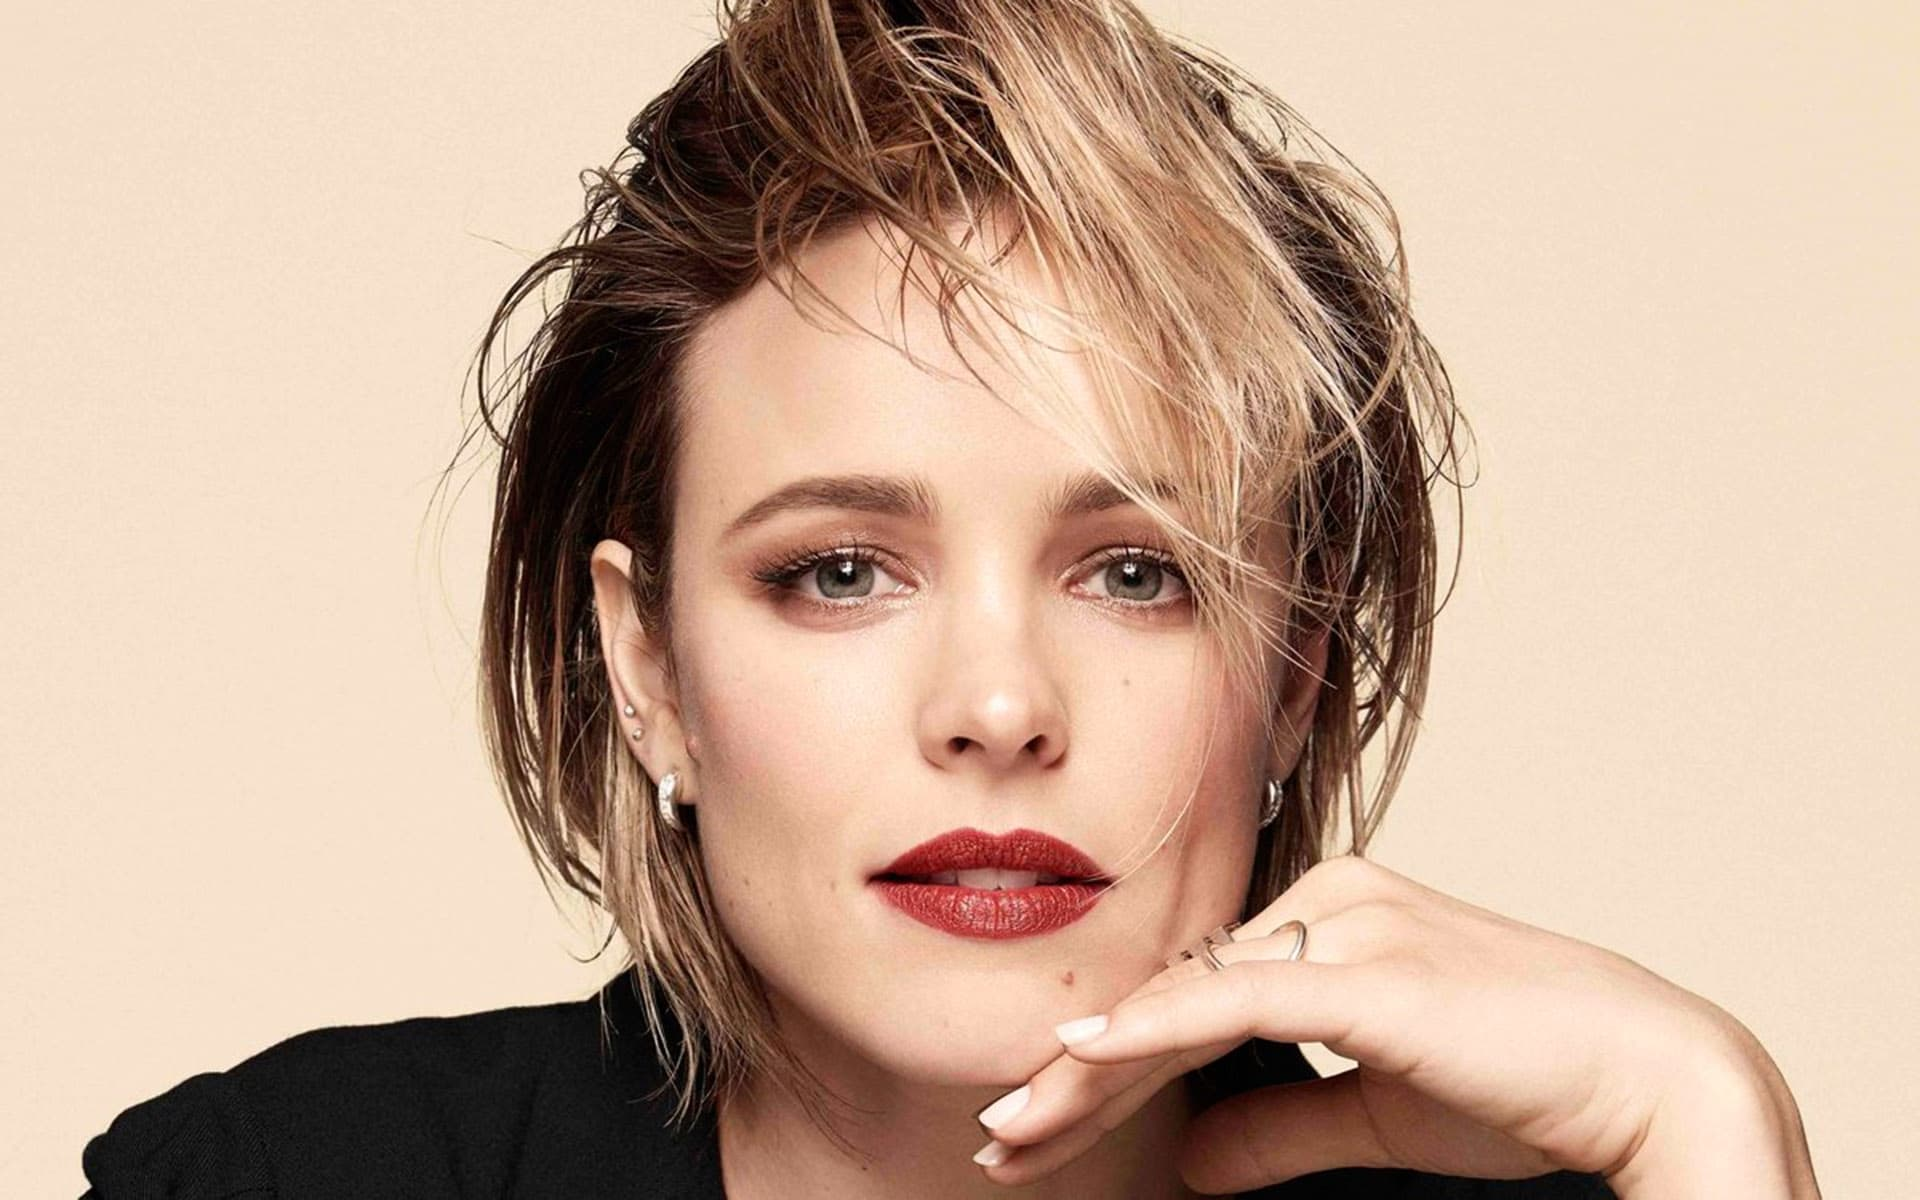 Ultra Hd Wallpapers Cars Rachel Mcadams Wallpapers Hd Images Photos High Quality